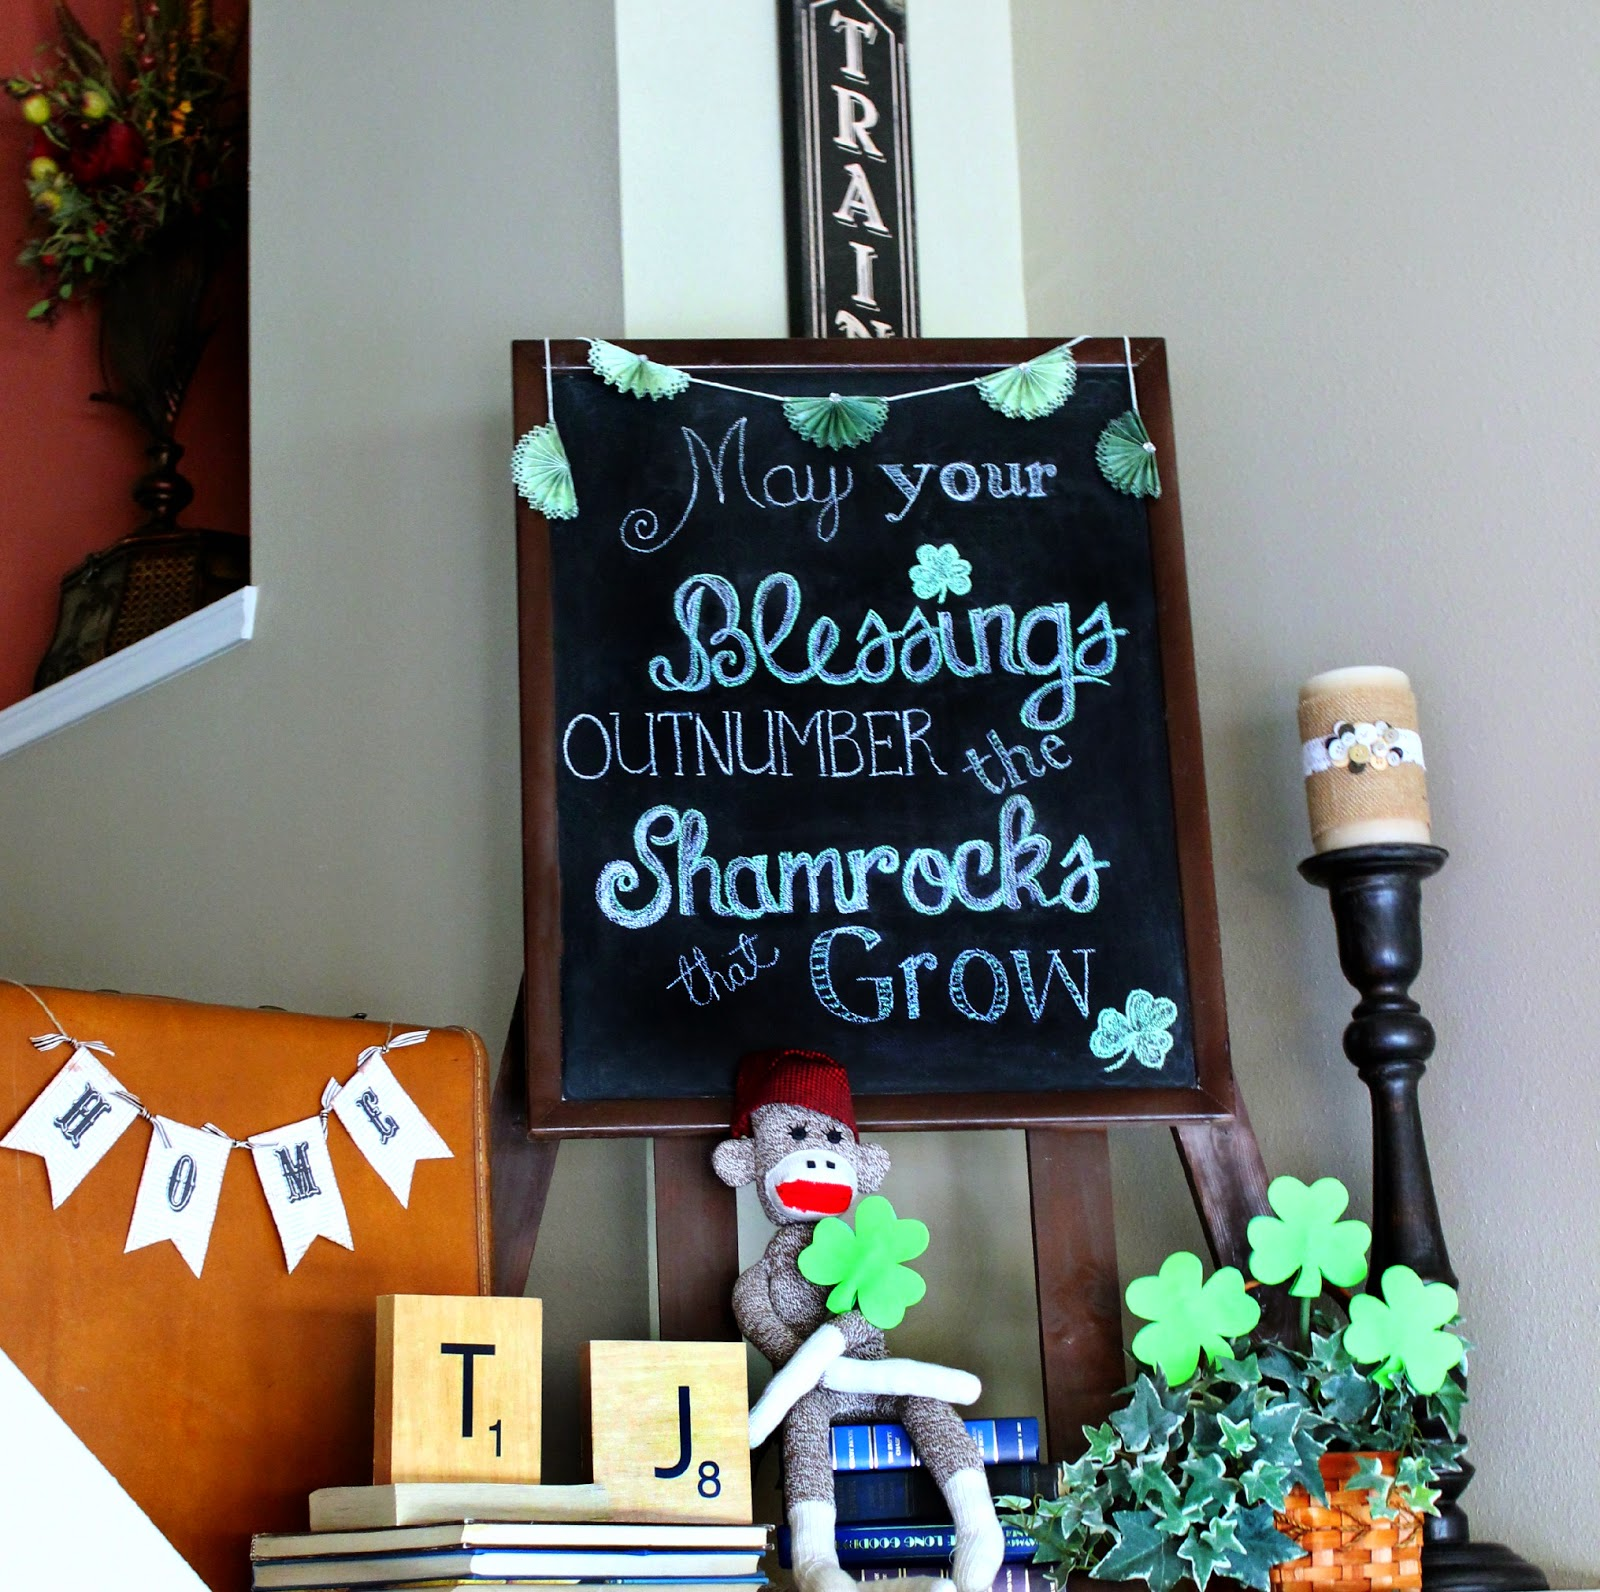 shamrocks, Irish Blessing, St. Paddy's Day, chalkboard art, chalkboard DIY